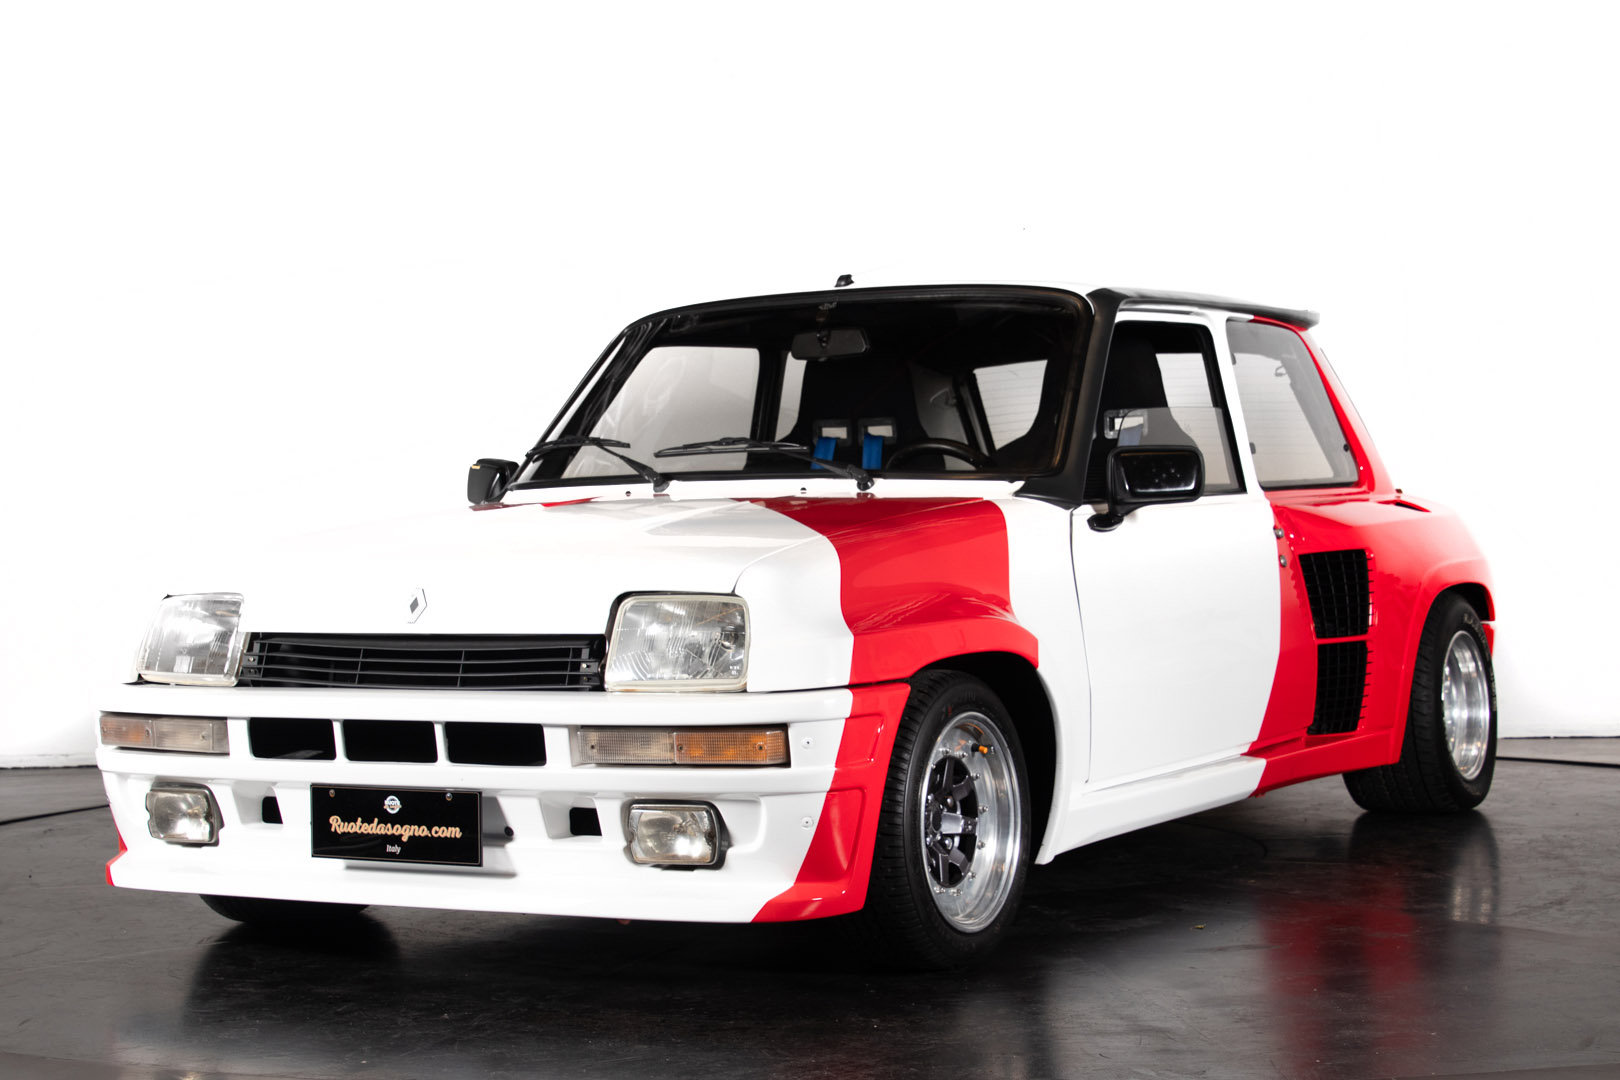 1984 RENAULT 5 TURBO 2 For Sale (picture 1 of 6)